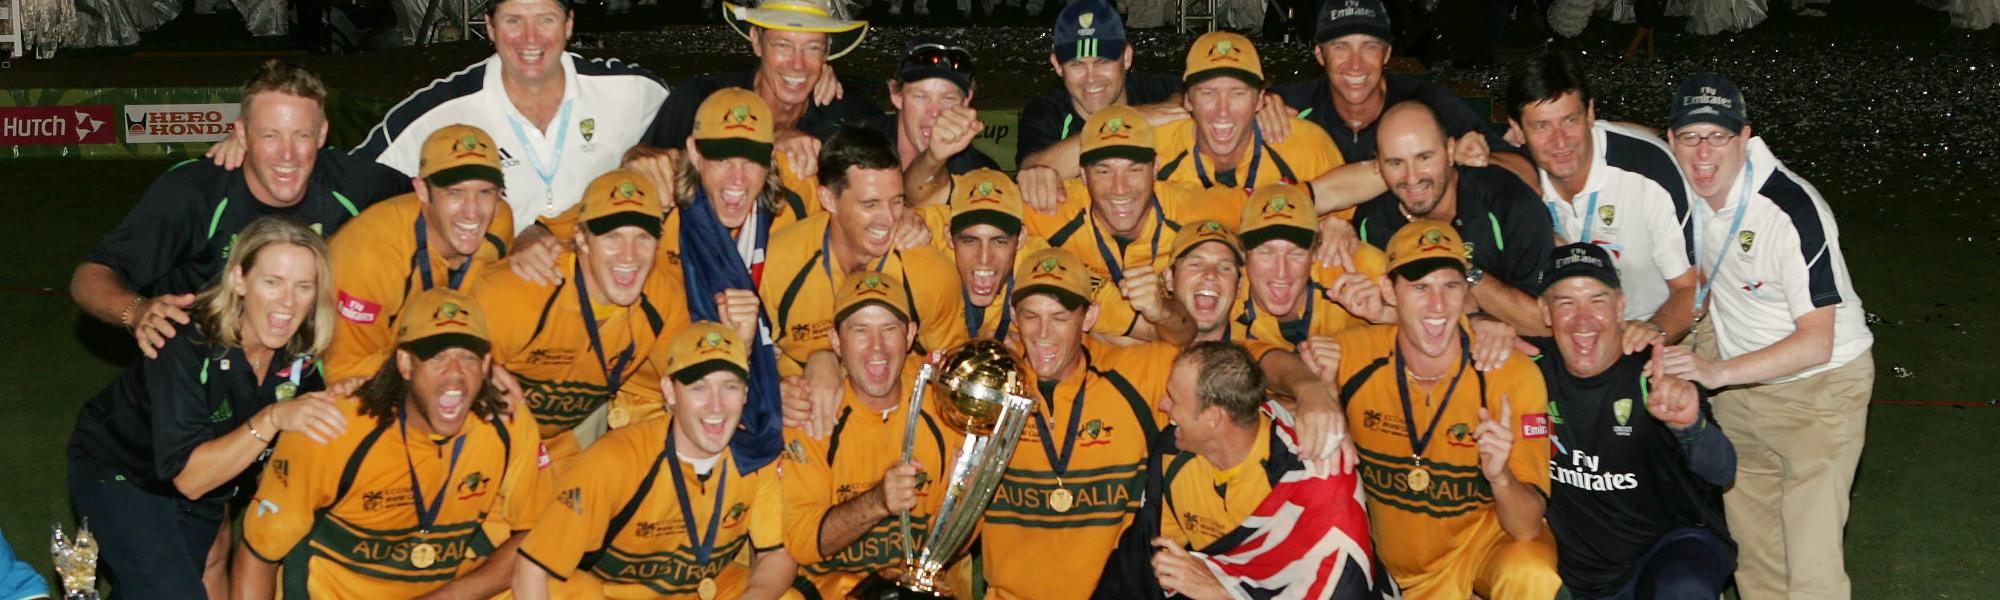 Men S Cricket World Cup 2007 Overview